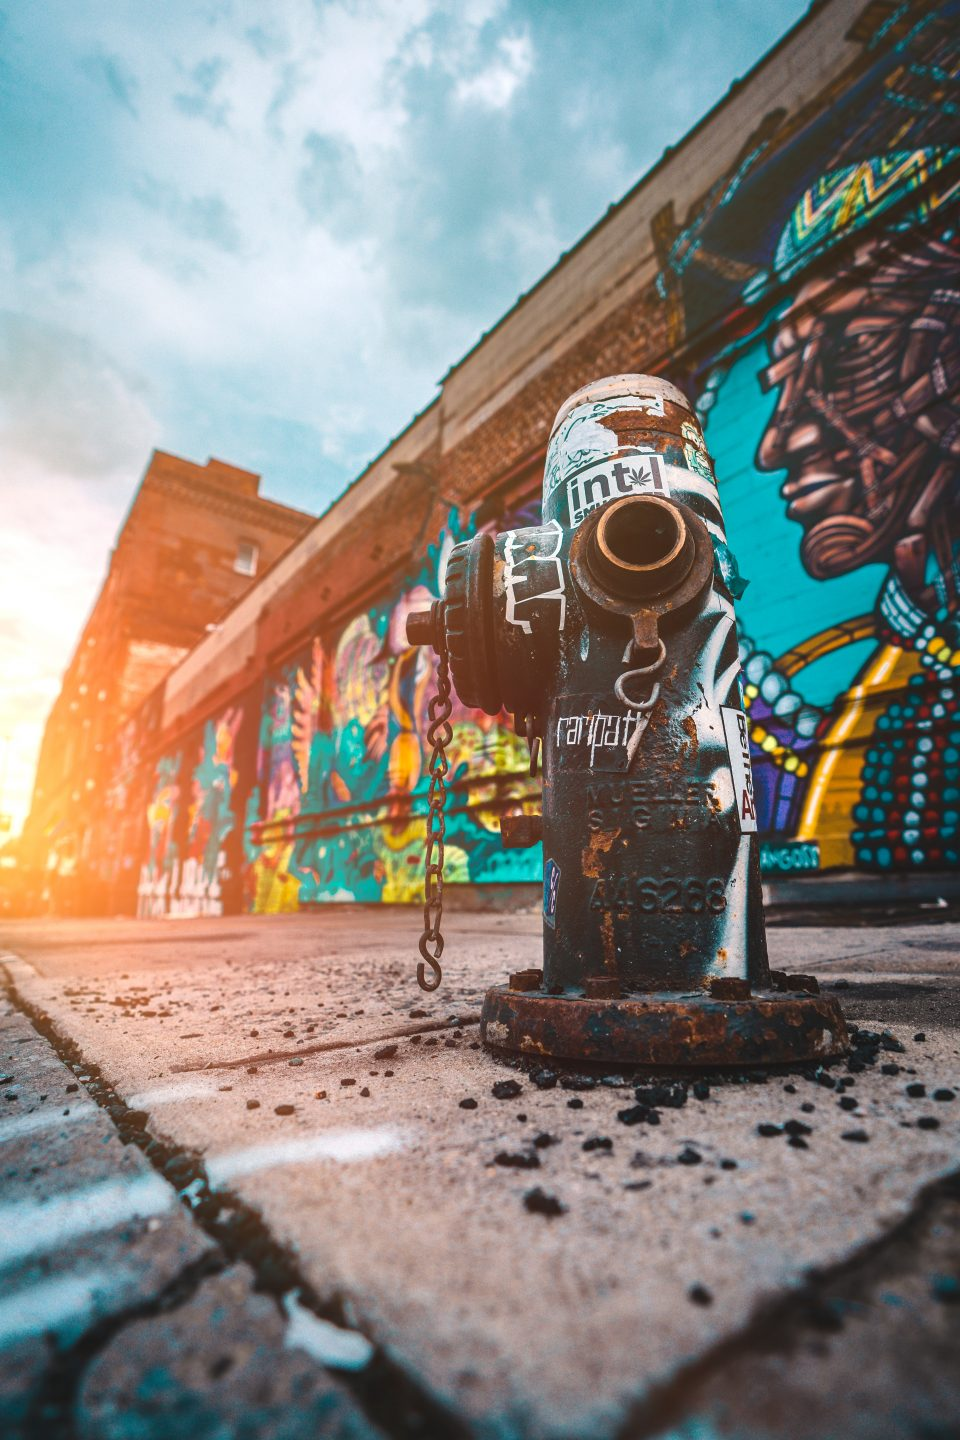 A photo of some beautiful street art, taken from the ground view - there's a water hydrant and it's grafiti'd too.